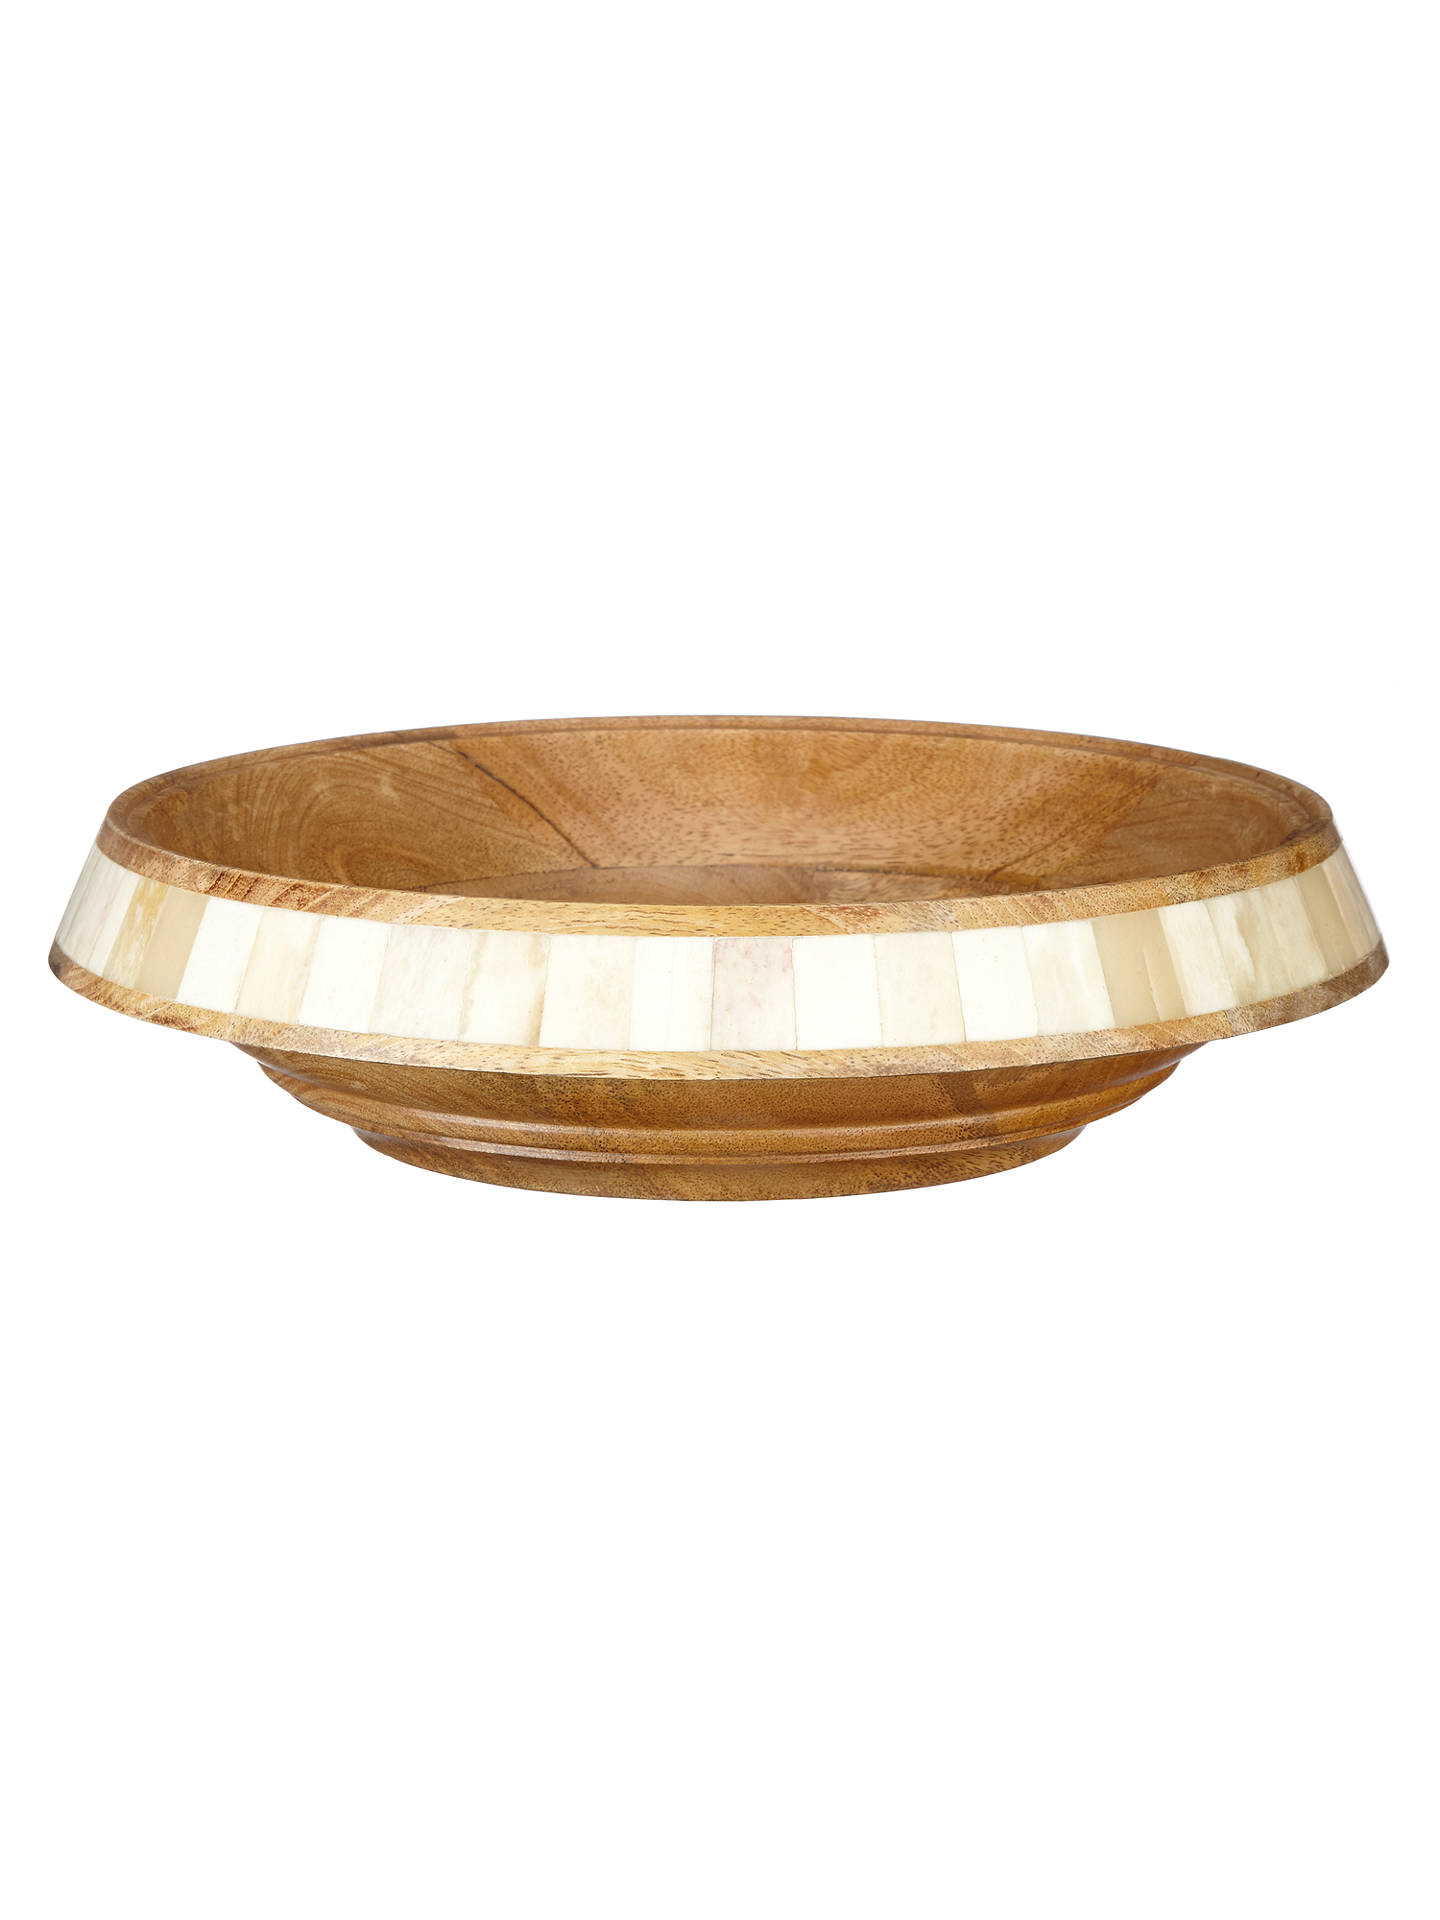 81a174a0c1f9 Buy John Lewis Fusion Wooden Bowl, Large Online at johnlewis.com ...